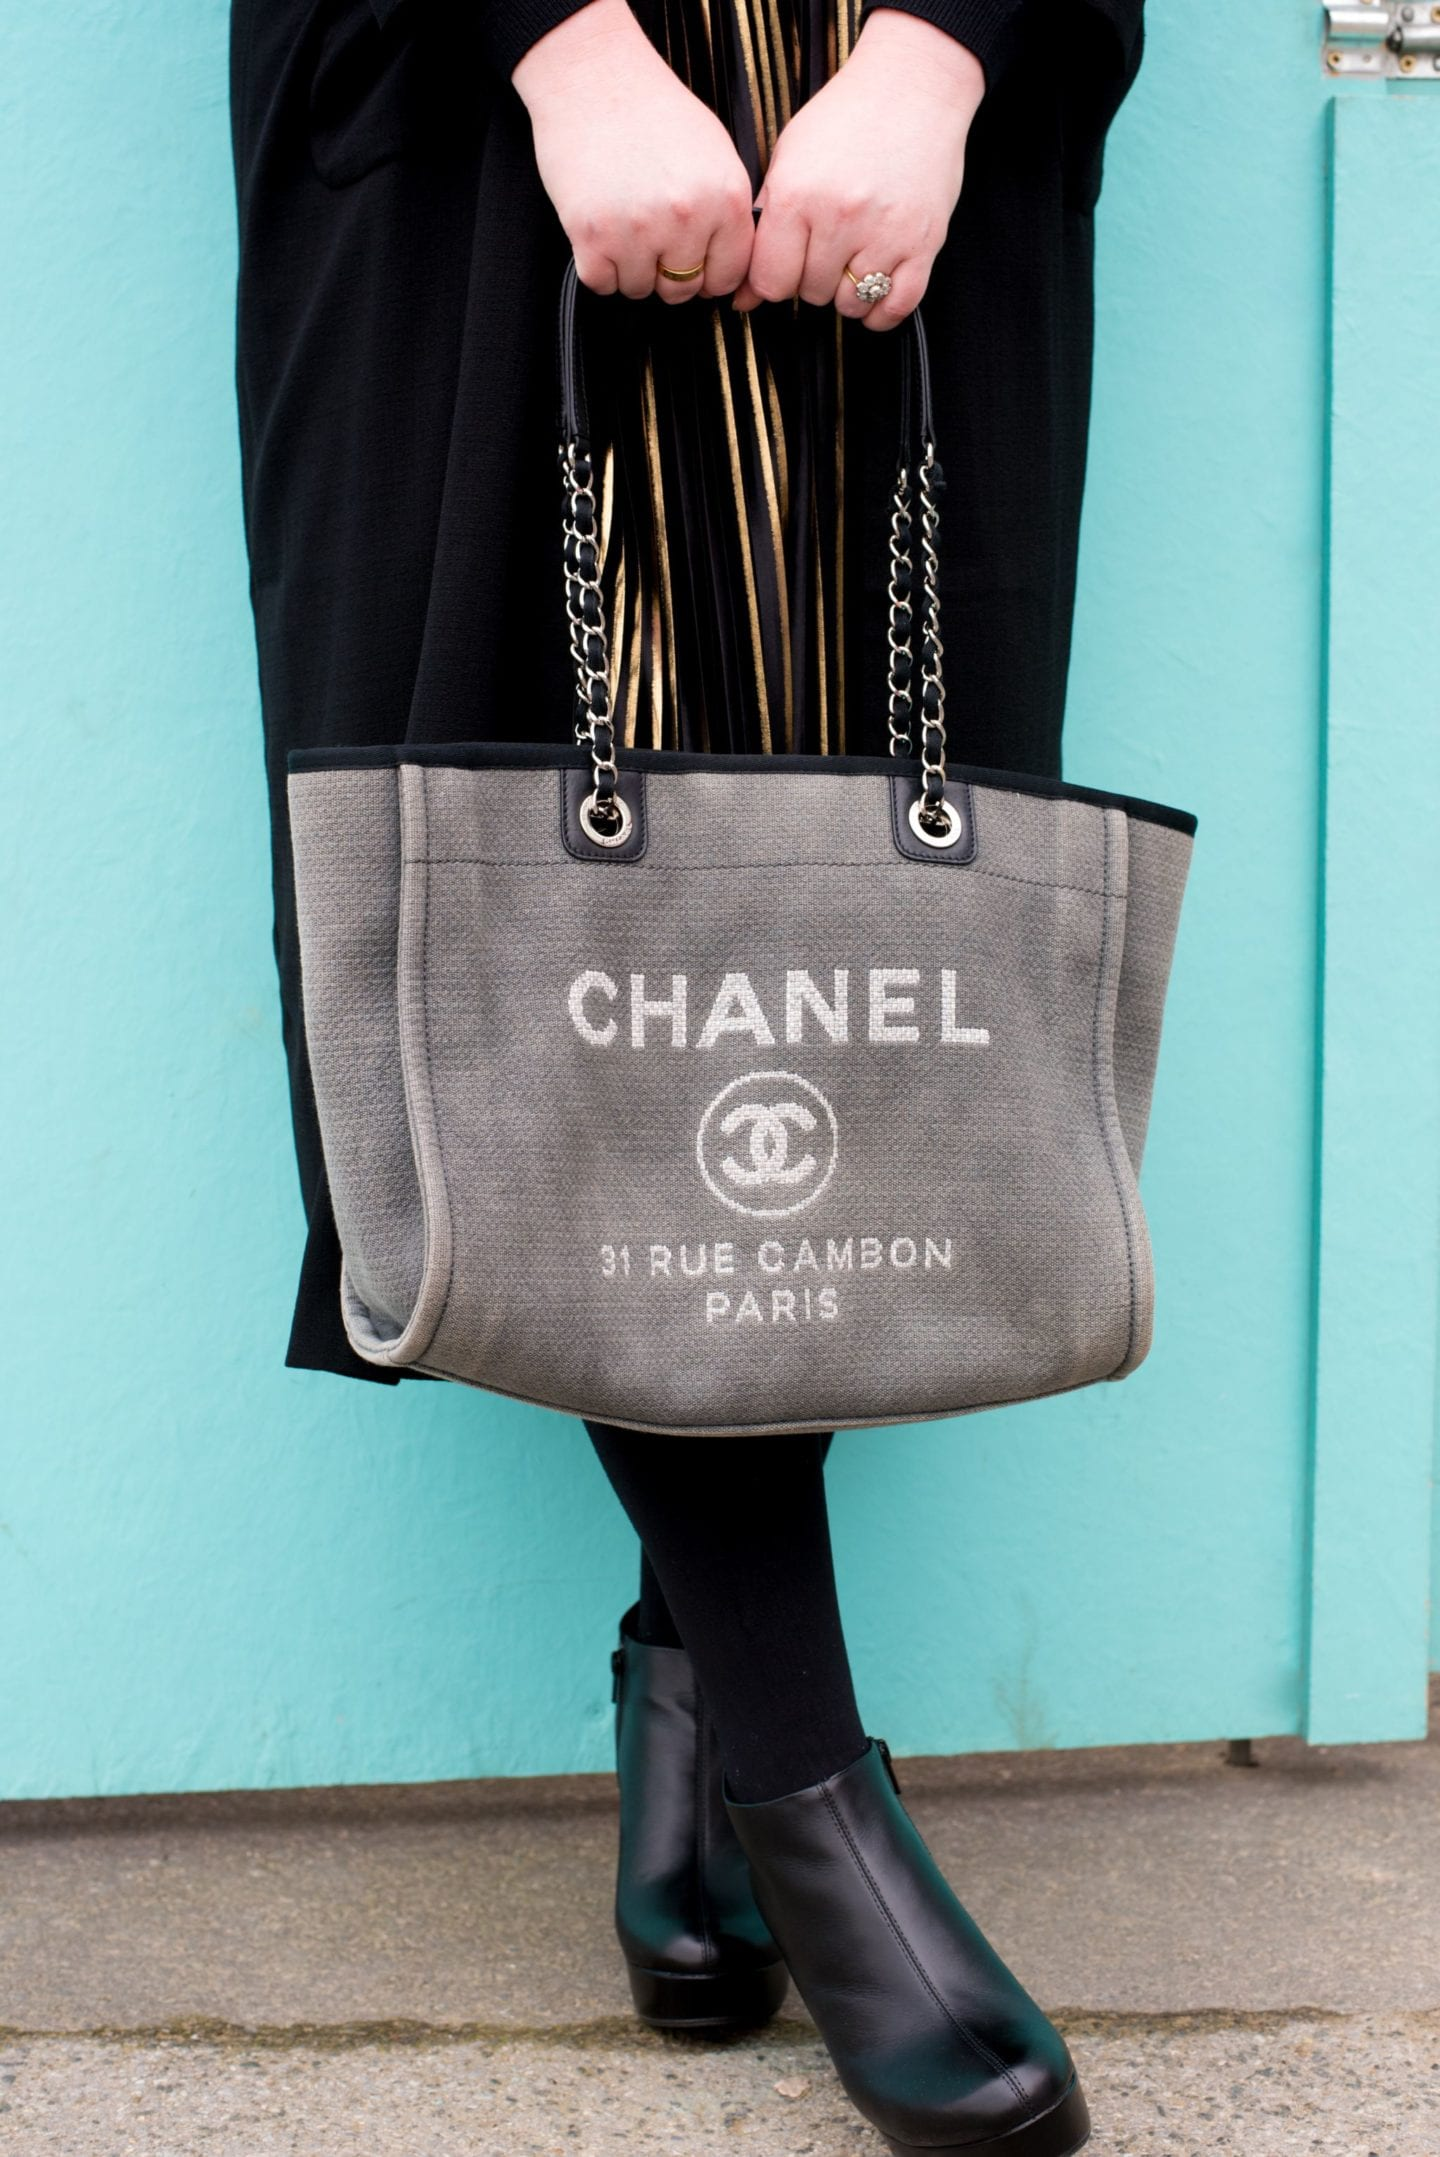 Chanel Deauville Tote Bag detail grey canvas tote bag chain